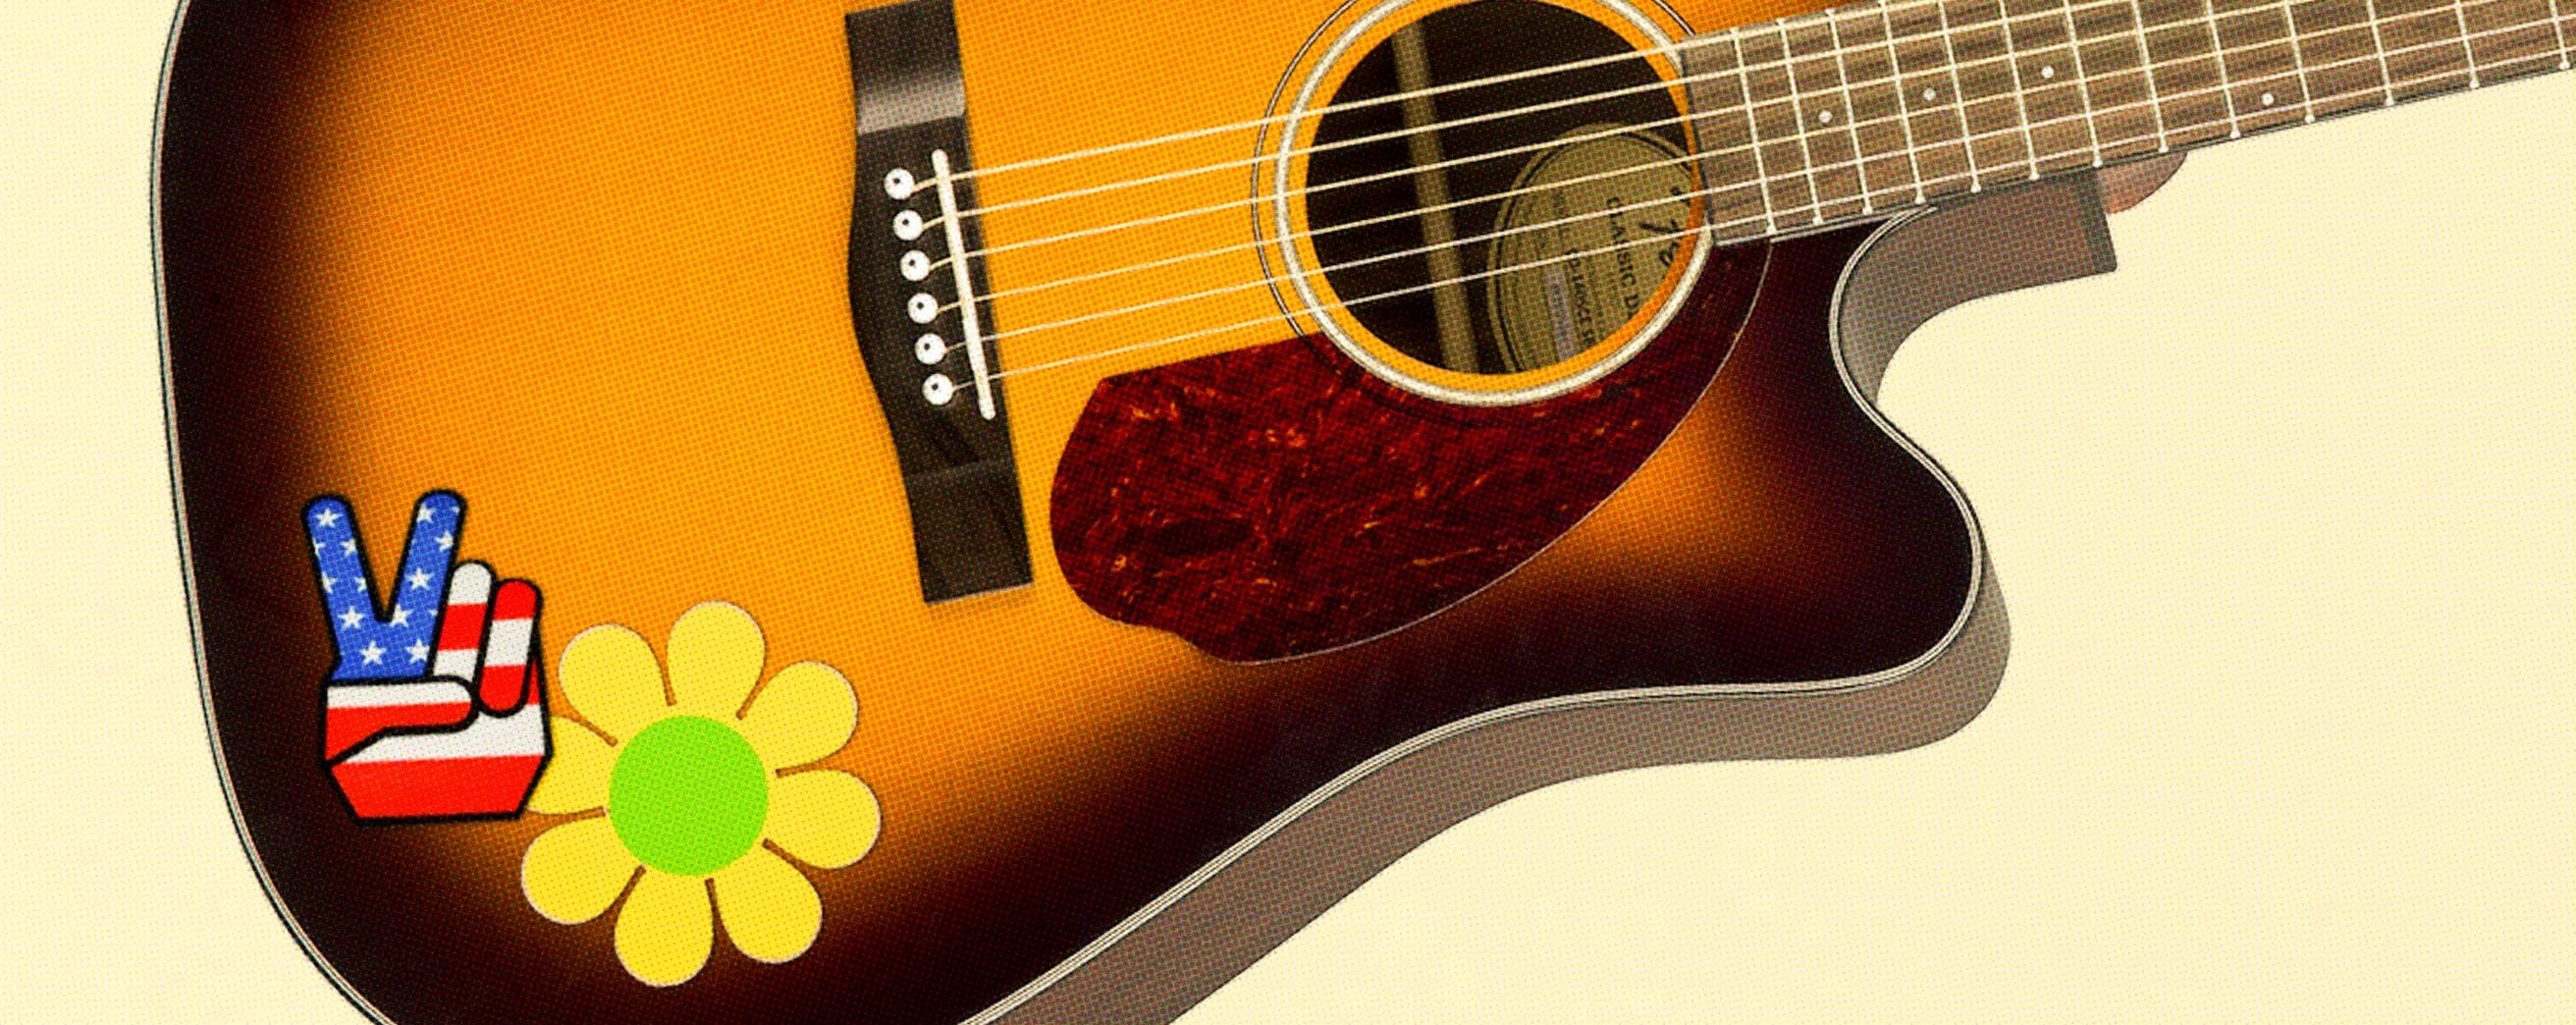 Will Stickers Affect The Tone Of An Acoustic And How To Remove Them Guitar Fender Acoustic Guitar Acoustic Guitar